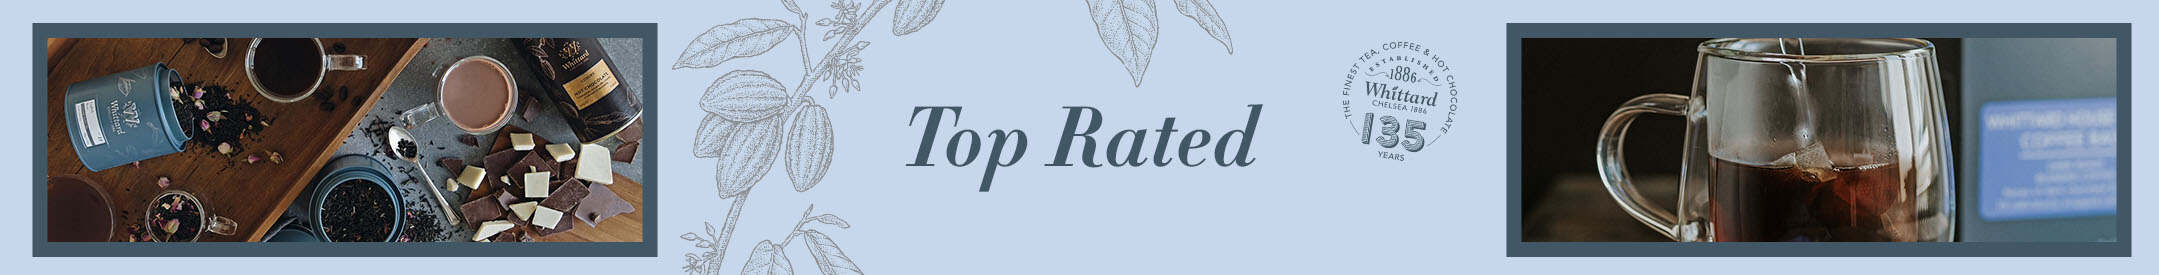 Top-Rated at Whittard